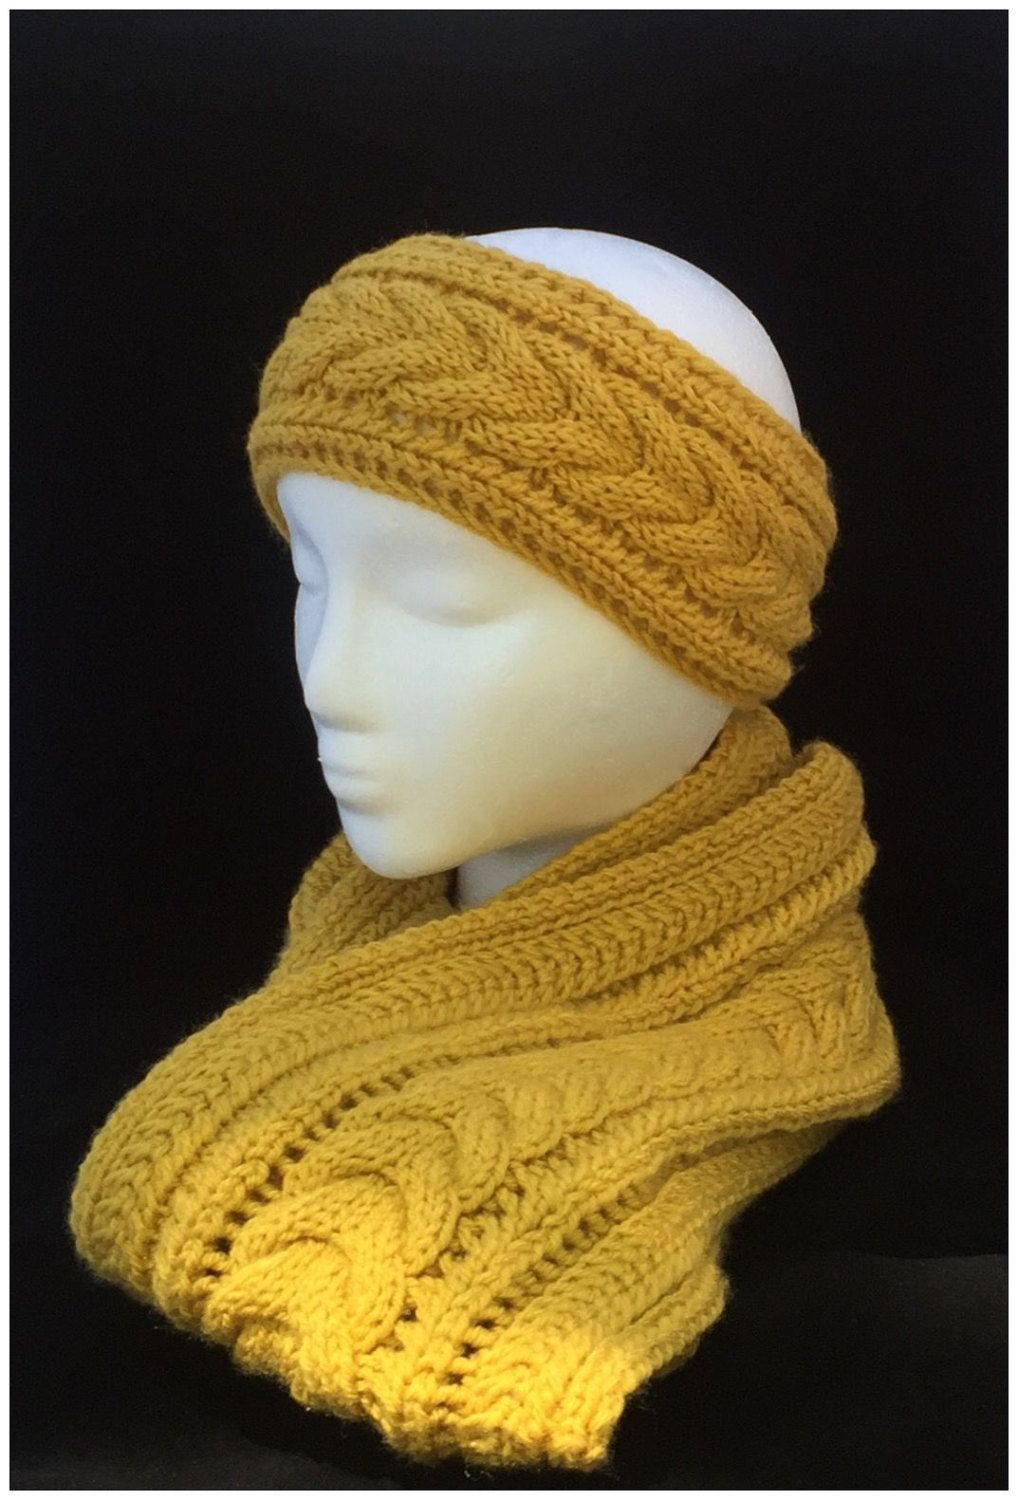 Yellow knit ear warmer cable knit headband handknit ear warmer yellow knit ear warmer cable knit headband handknit ear warmer handmade headband boho headband knitted earwarmer winter knit headband dt1010fo